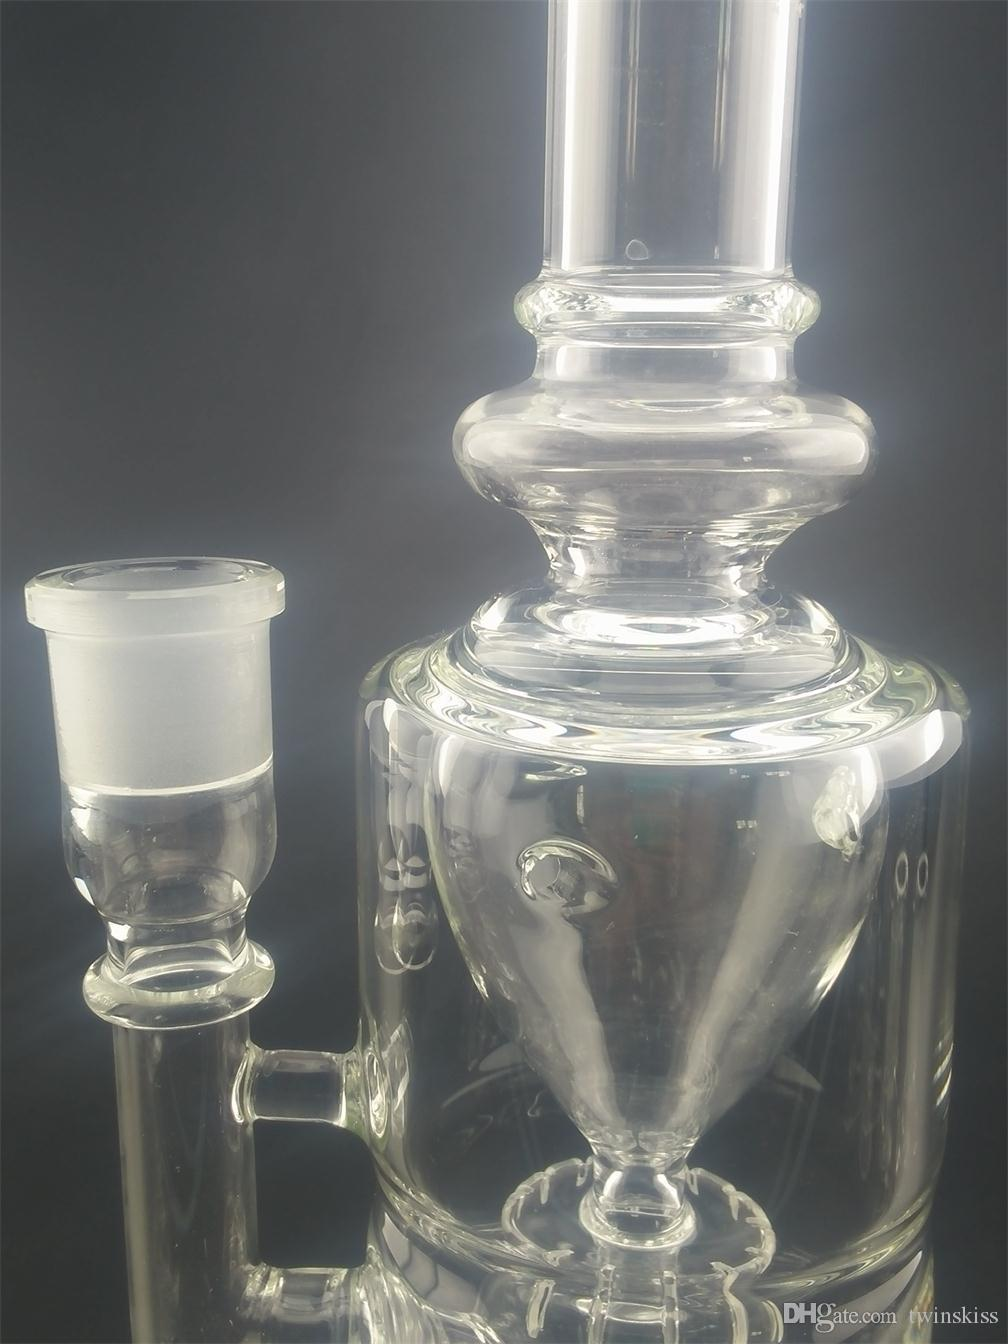 Manufacturers selling water pipes of ashtrays glass water pipe breaks will exempt freight cost